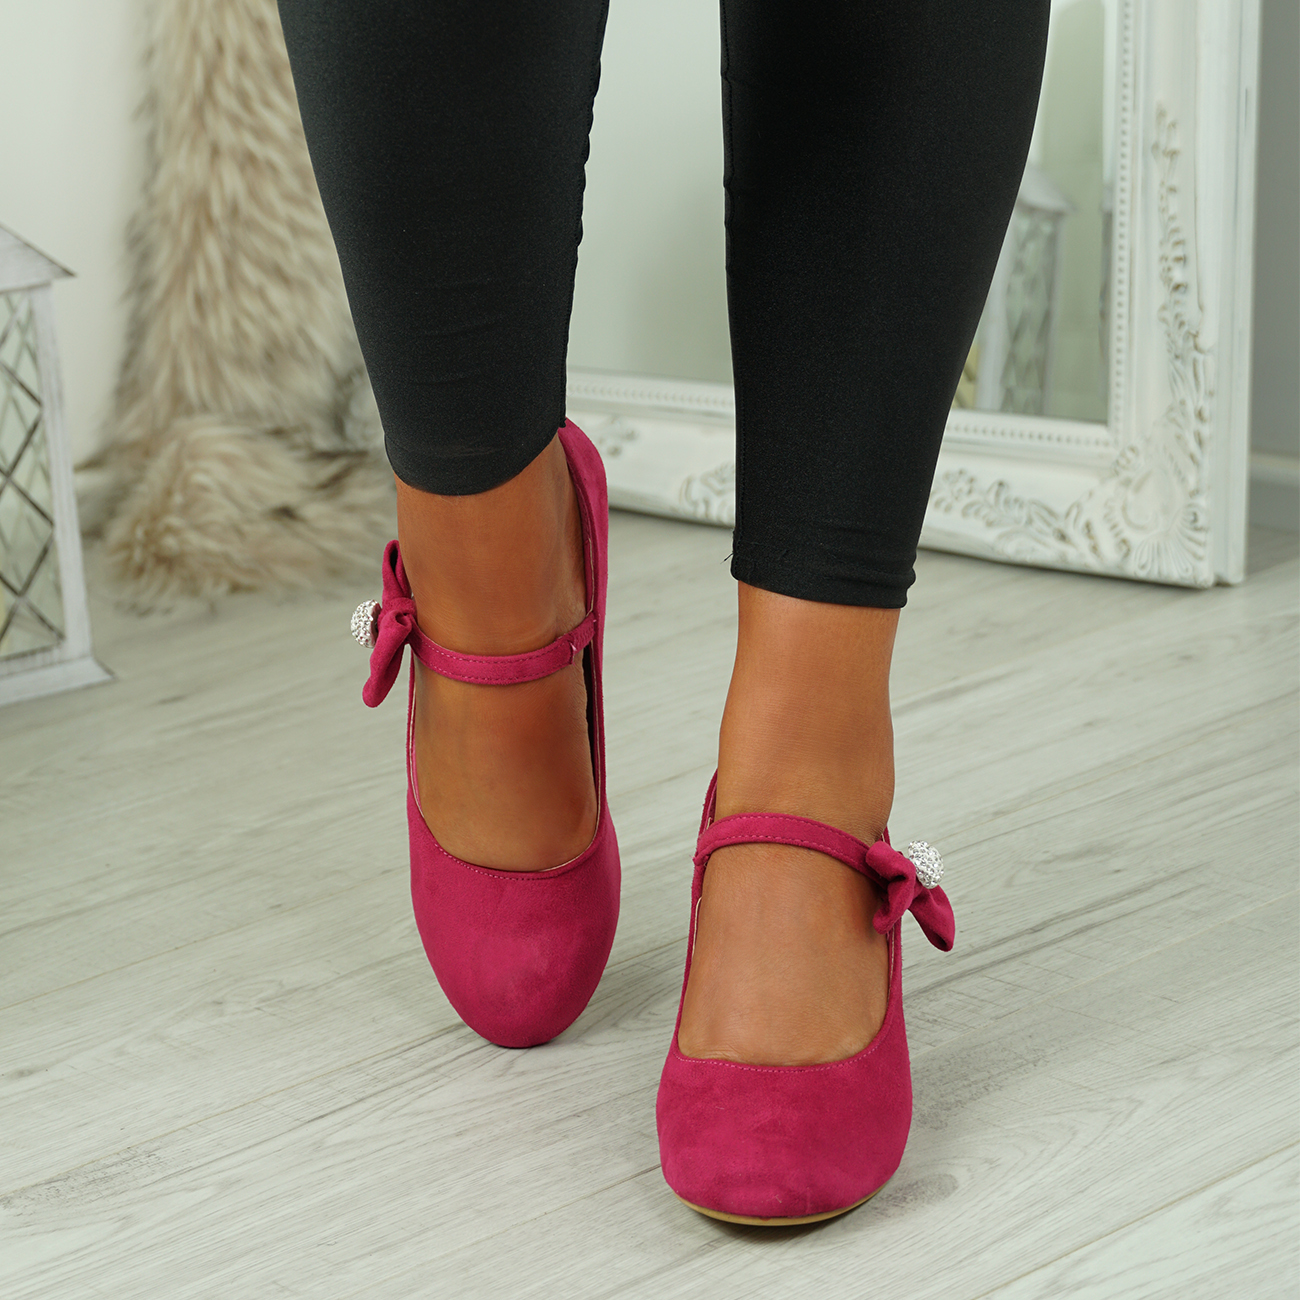 NEW-WOMENS-BLOCK-HEEL-PUMPS-BOW-BUCKLE-STRAP-ROUNDED-TOE-CASUAL-SHOES-SIZE thumbnail 12